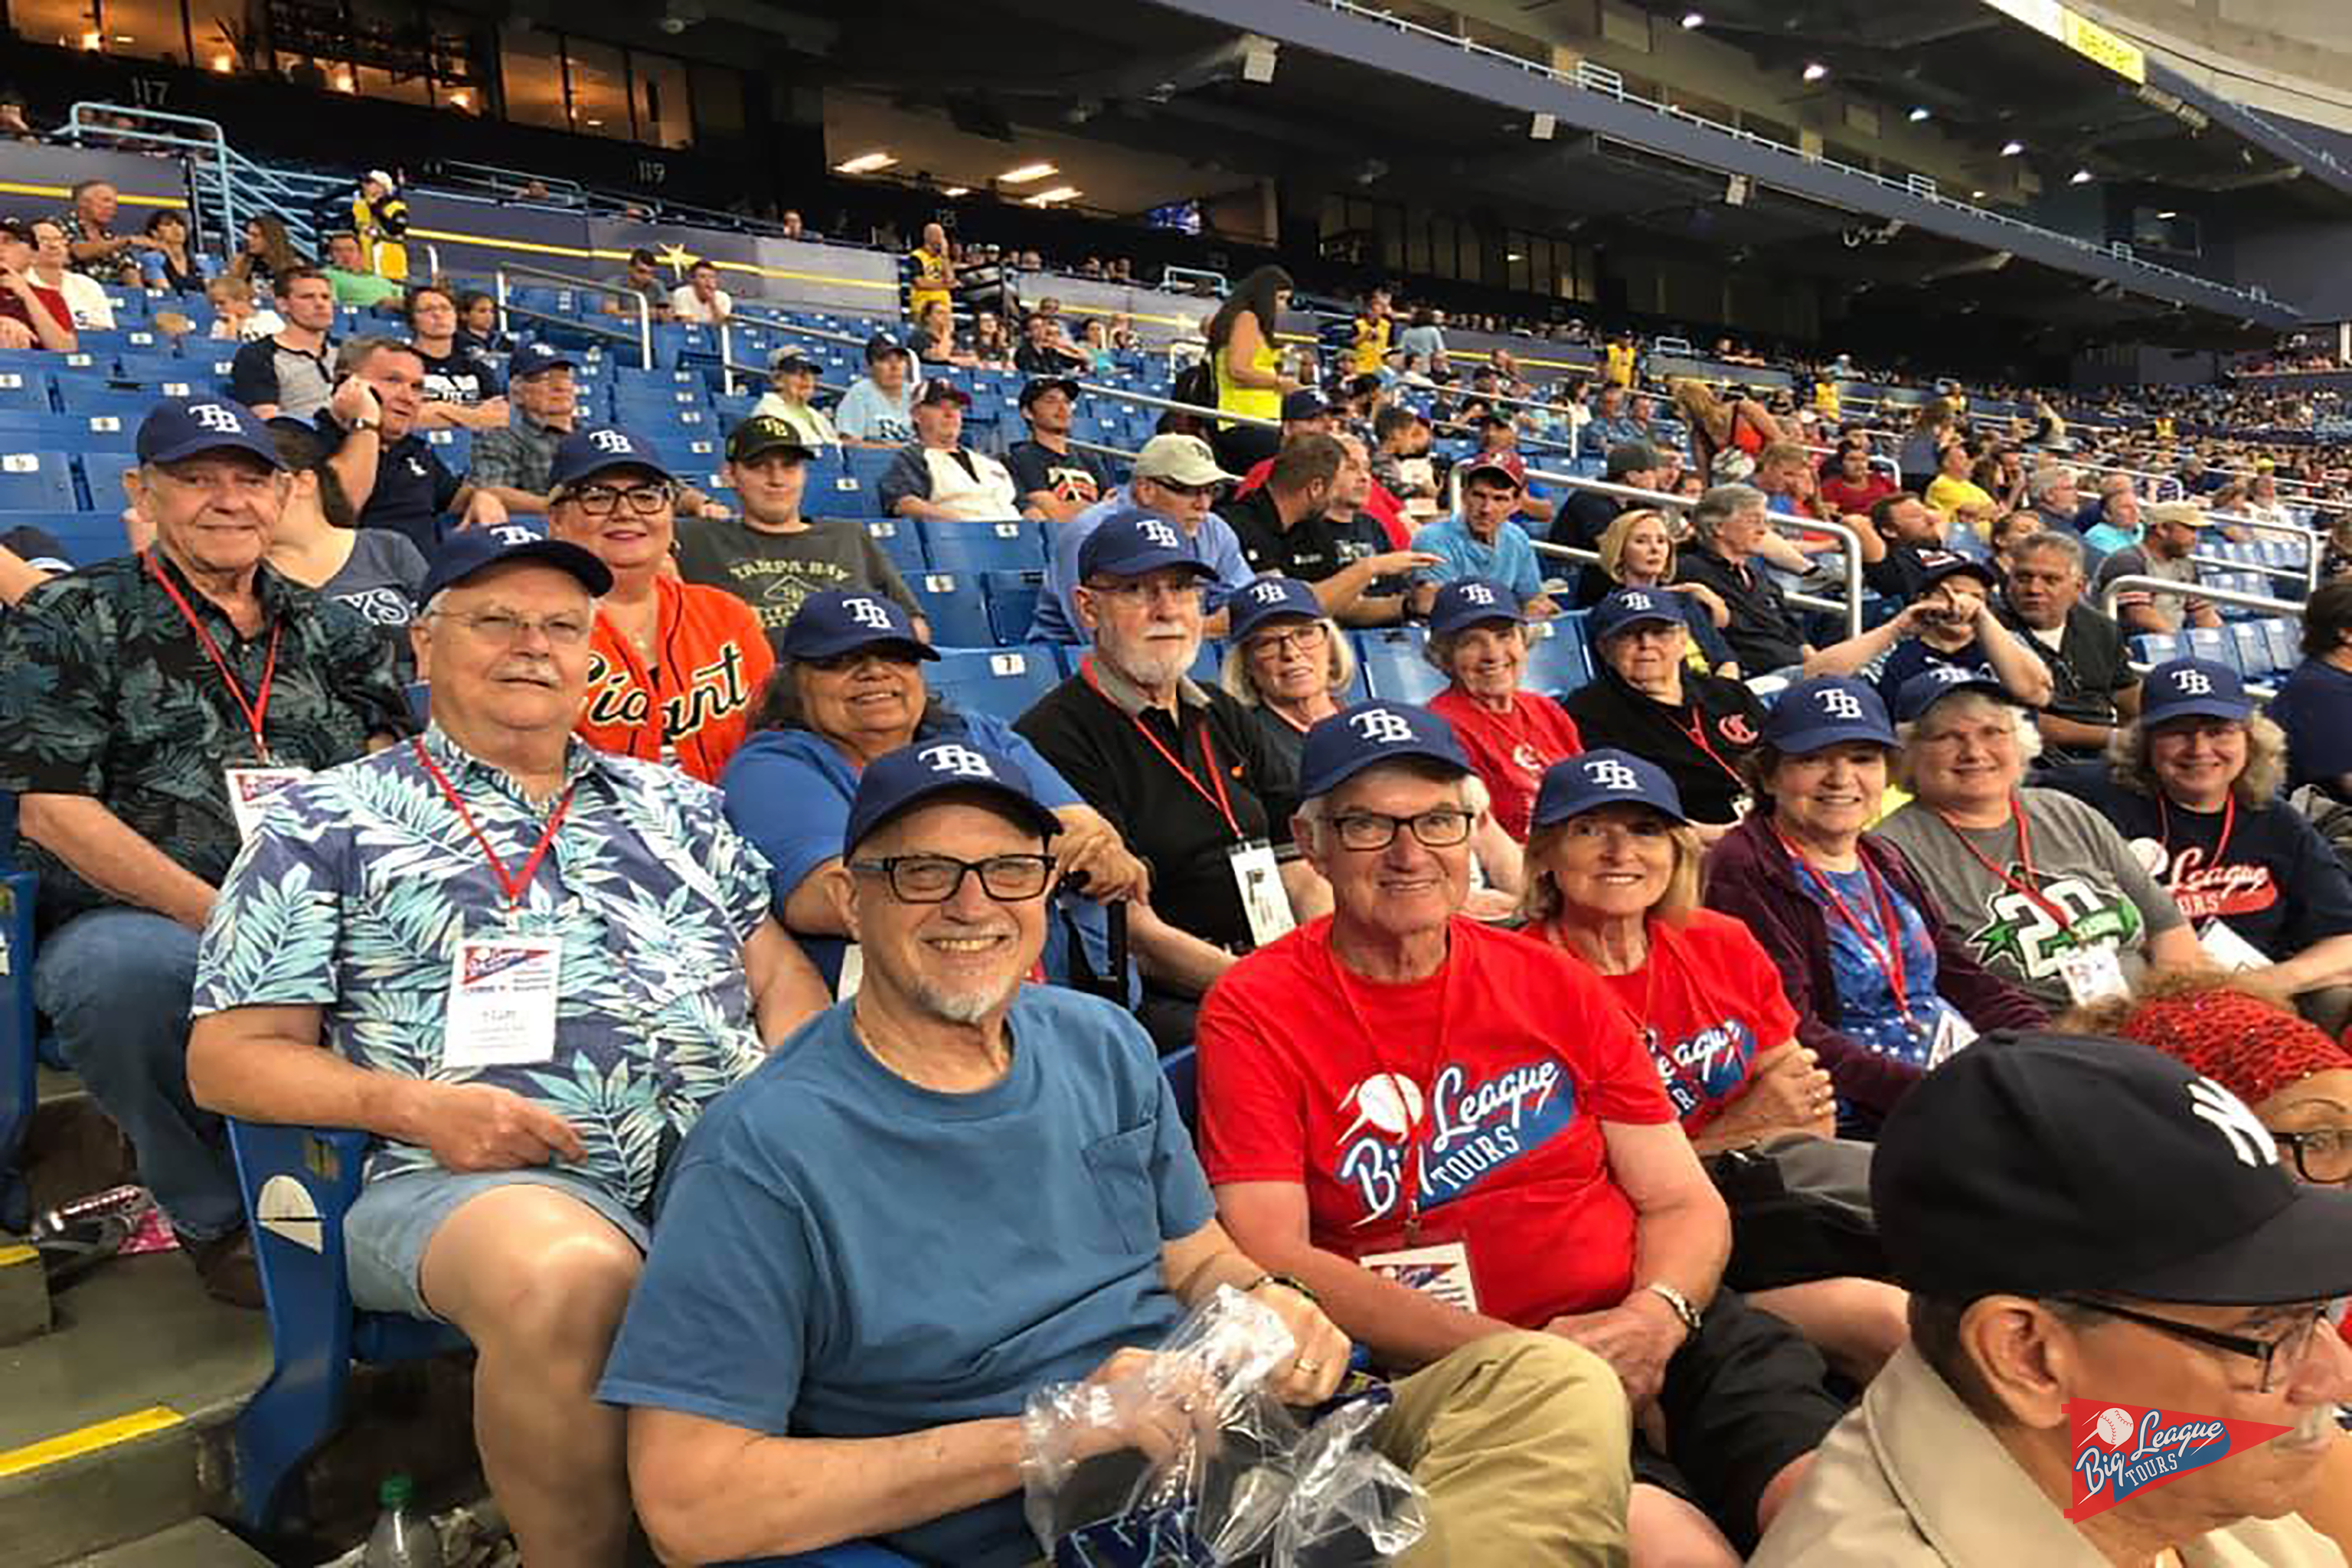 Guests at Tropicana Field